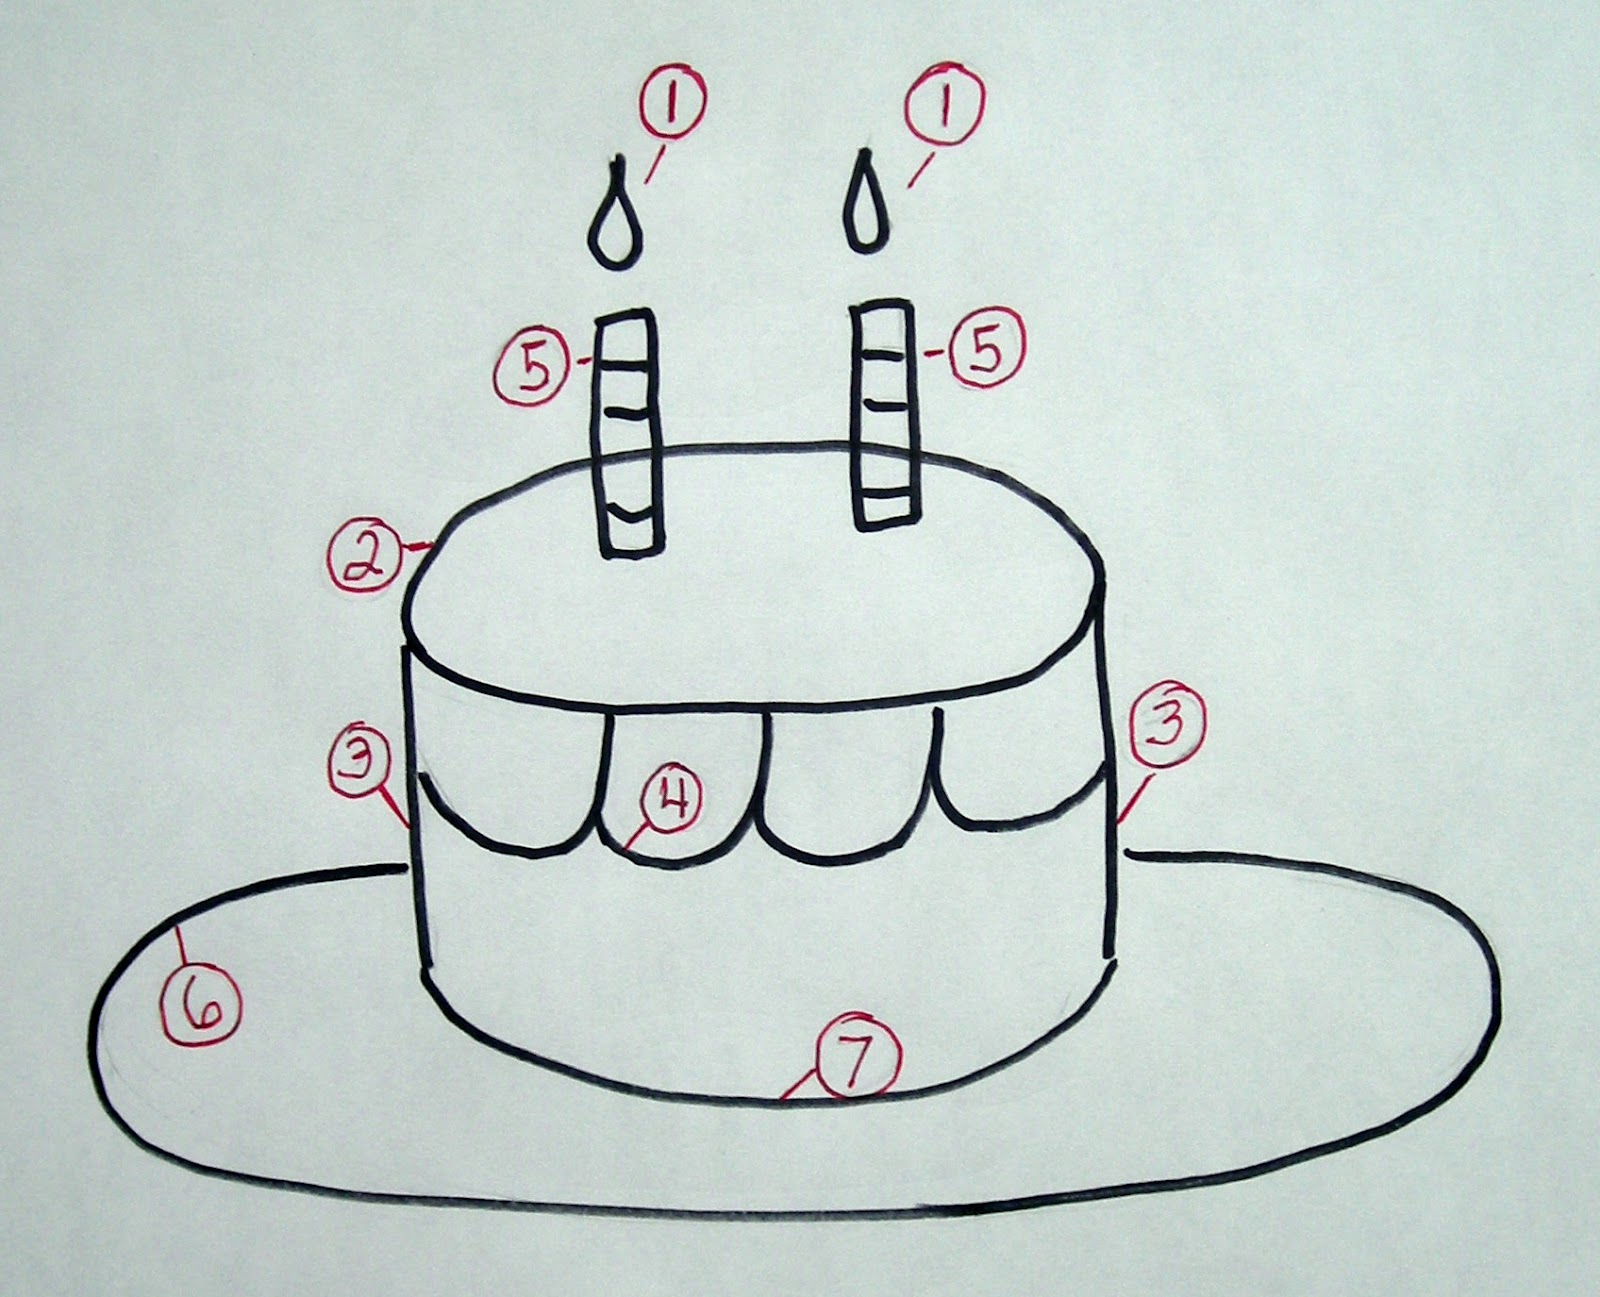 How To Draw Cake Images : Notes from the Story Room: Birthday Cake Draw and Tell Story